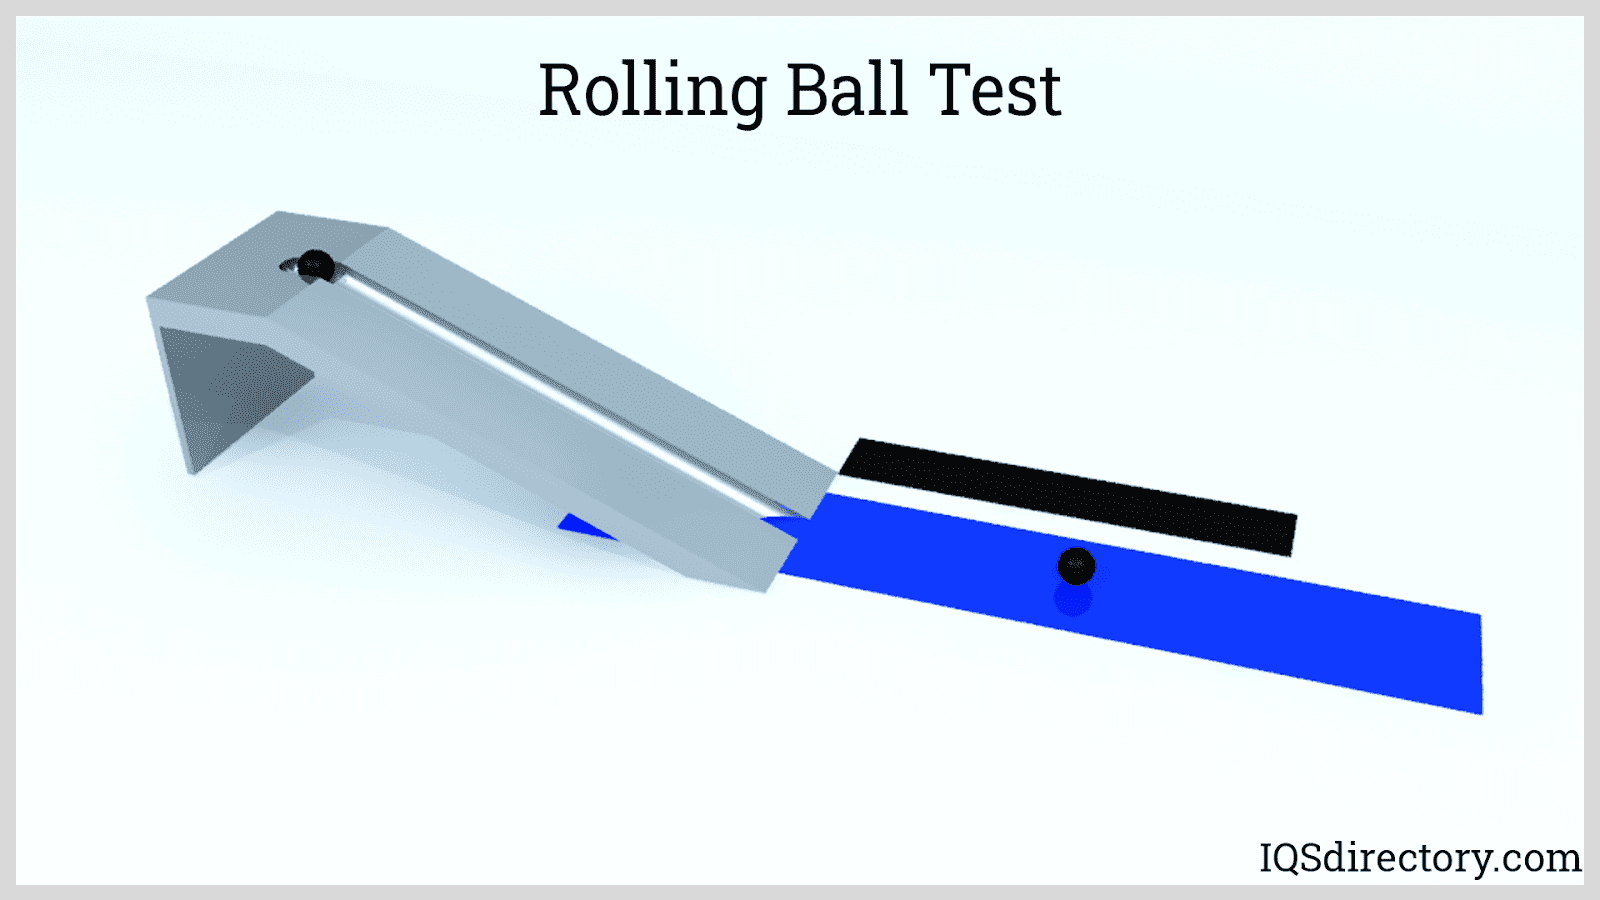 Rolling Ball Test